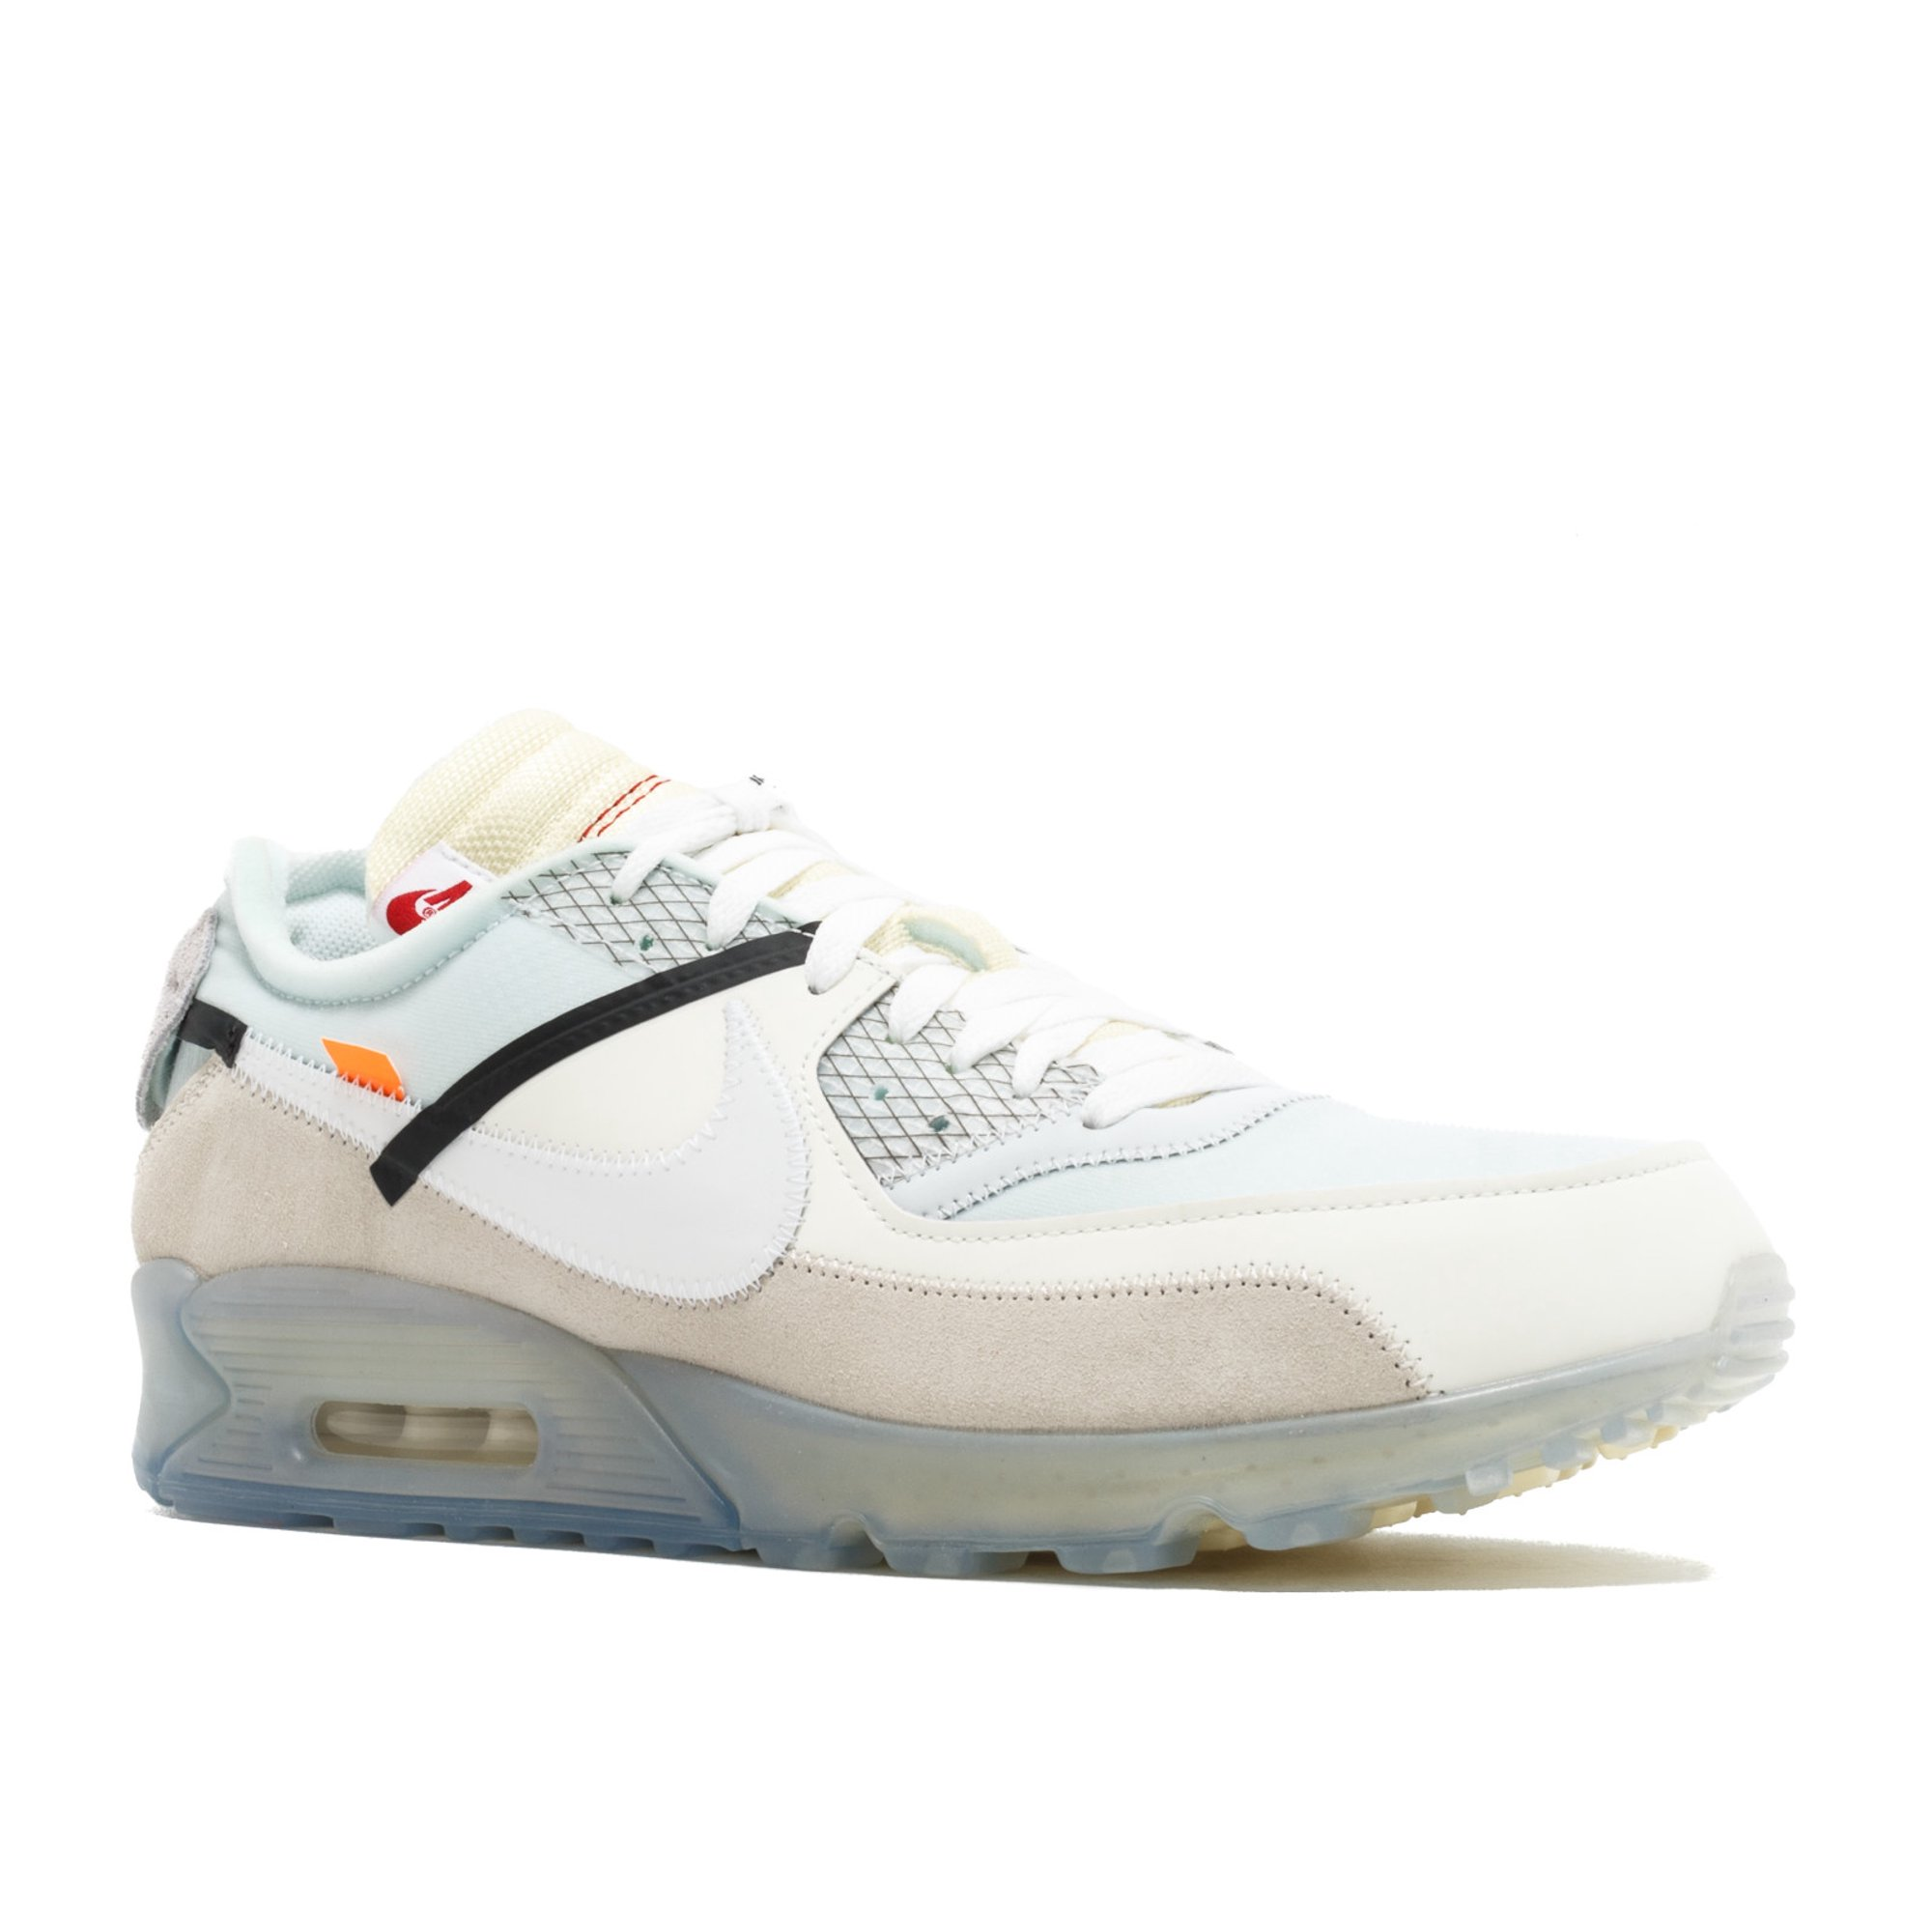 Off White Nike Air Max 90 Release Date AA7293 100 | Sole